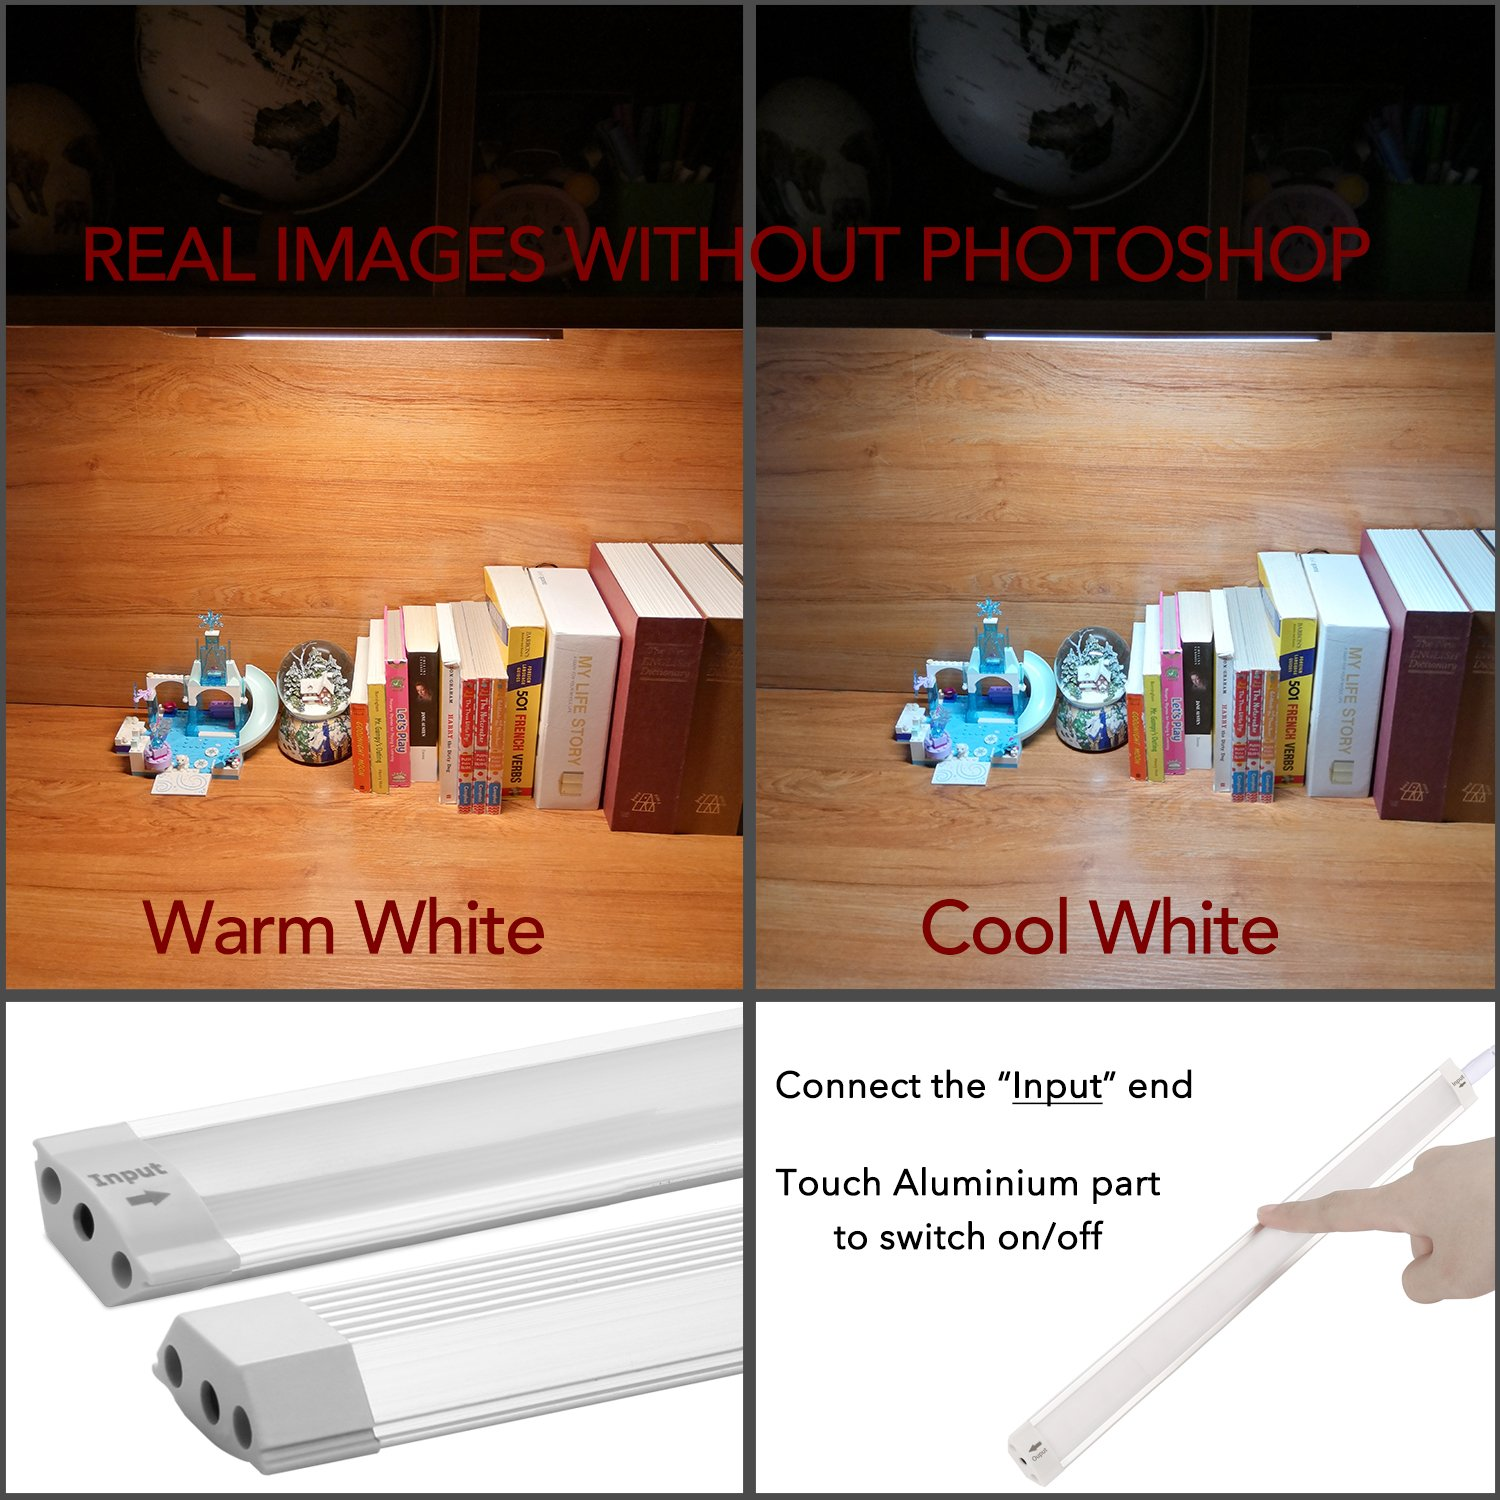 LED Under Cabinet Lighting Touch, Under Counter Lighting, 11.8 LED Closet Light, LED Under Shelf Lighting, for Kitchen,Cupboard,Desk,Workbench etc. Cool White 6000K,1 Panel Kit White